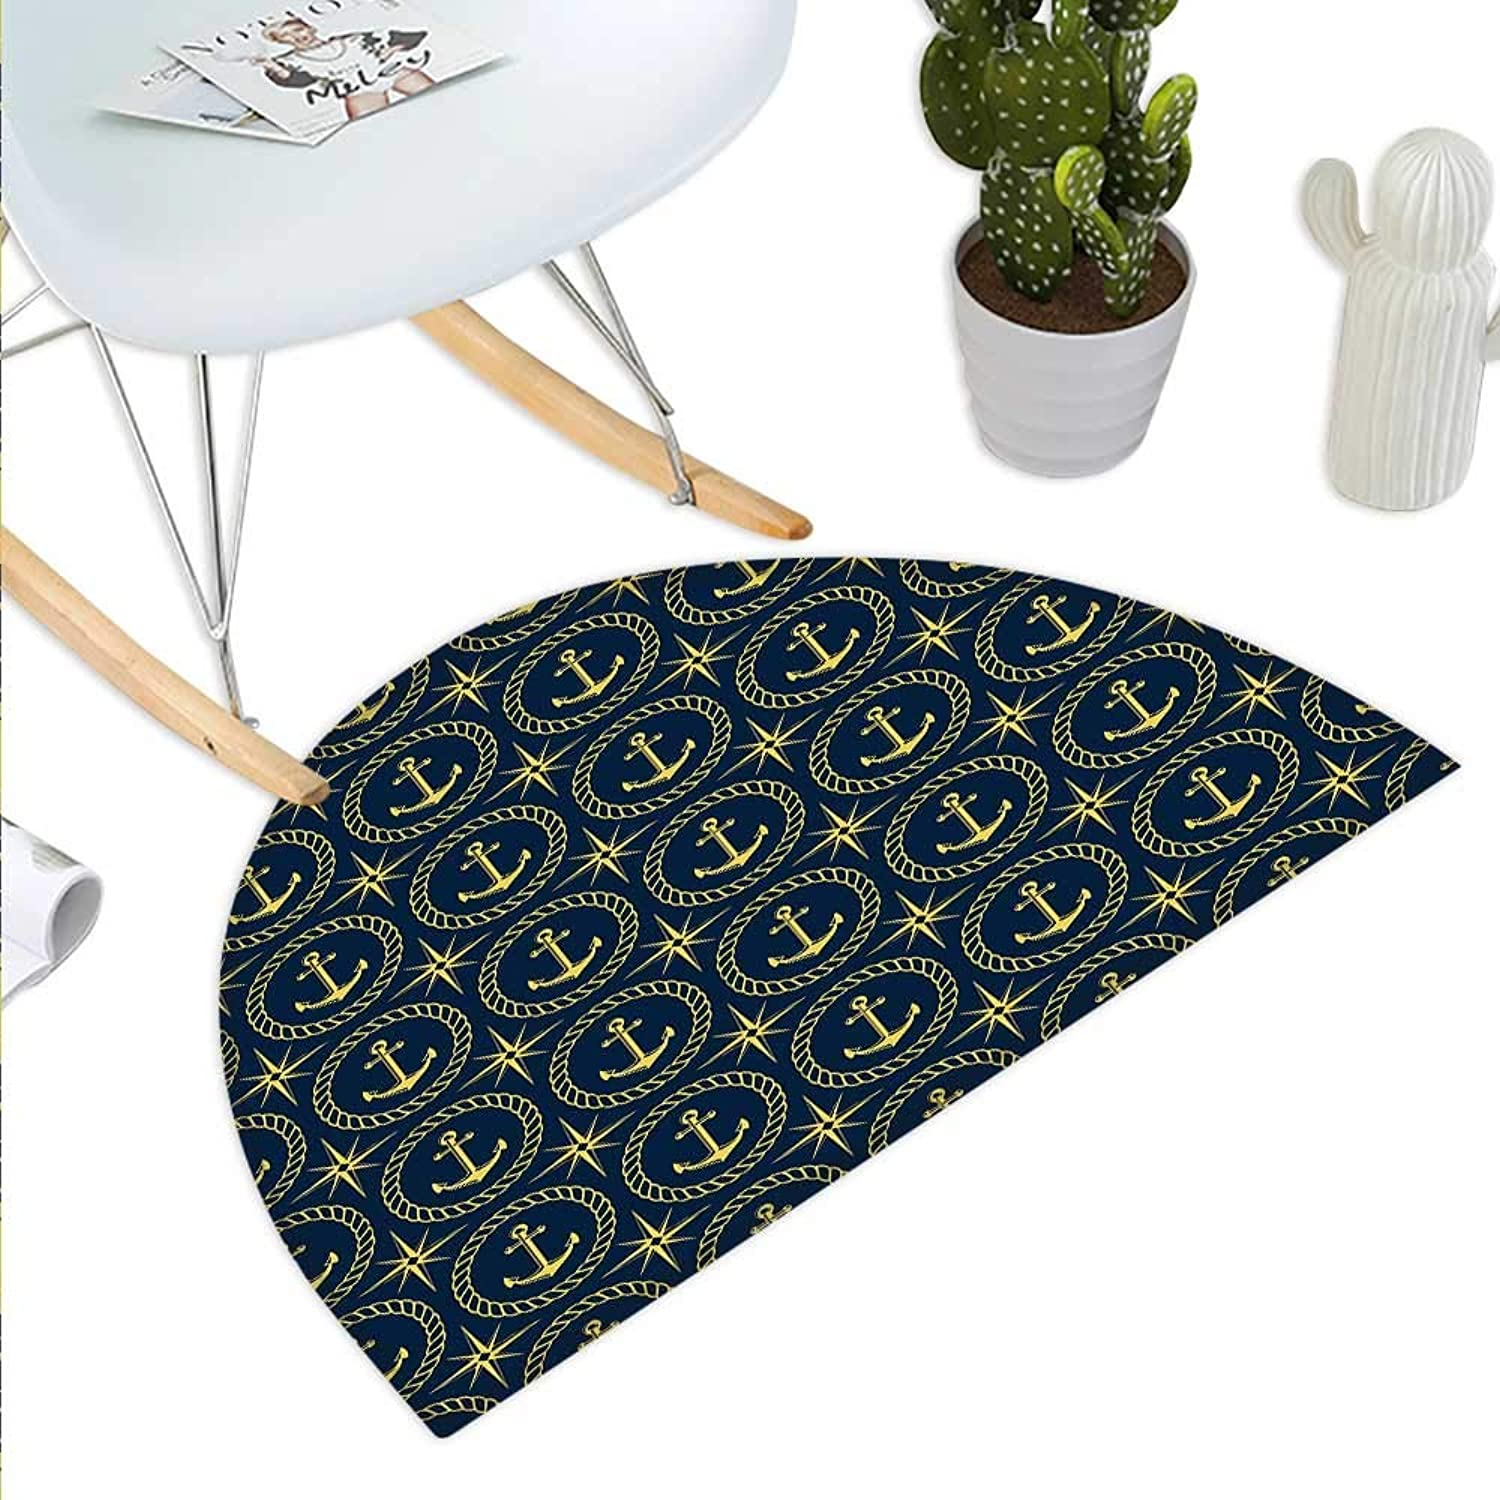 Anchor Semicircle Doormat Abstract Cruise Ship Pattern with Windpink Nautical Rope and Anchor Travel Trip Halfmoon doormats H 43.3  xD 64.9  Indigo Yellow